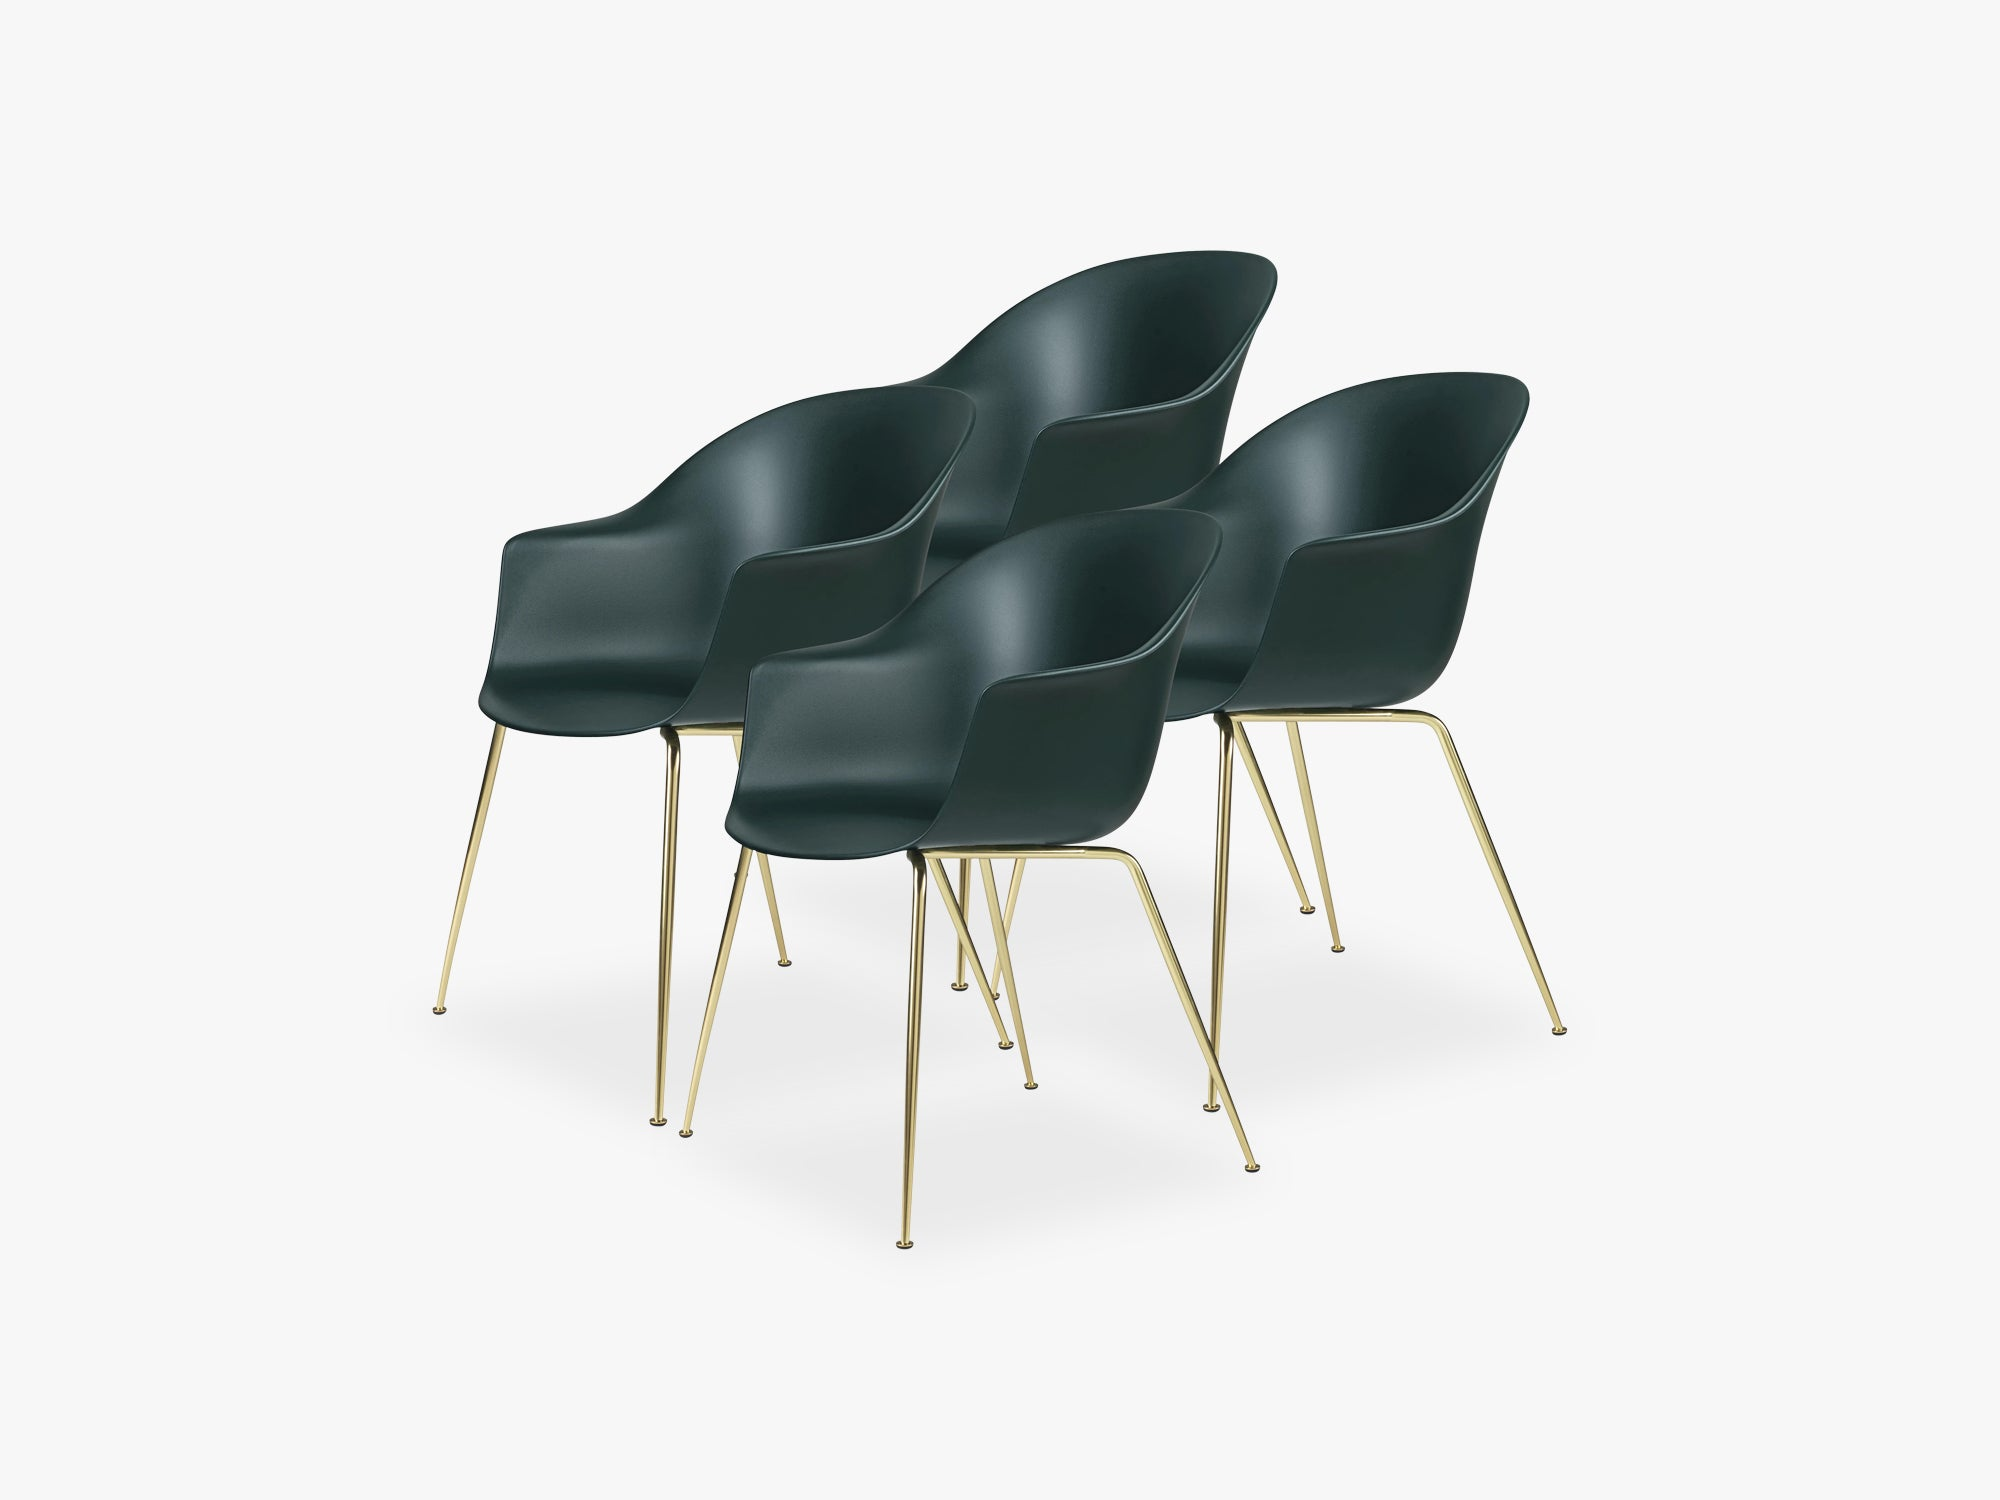 Bat Dining Chair 4 pcs - Conic Brass Semi Matt Base, Dark Green fra GUBI